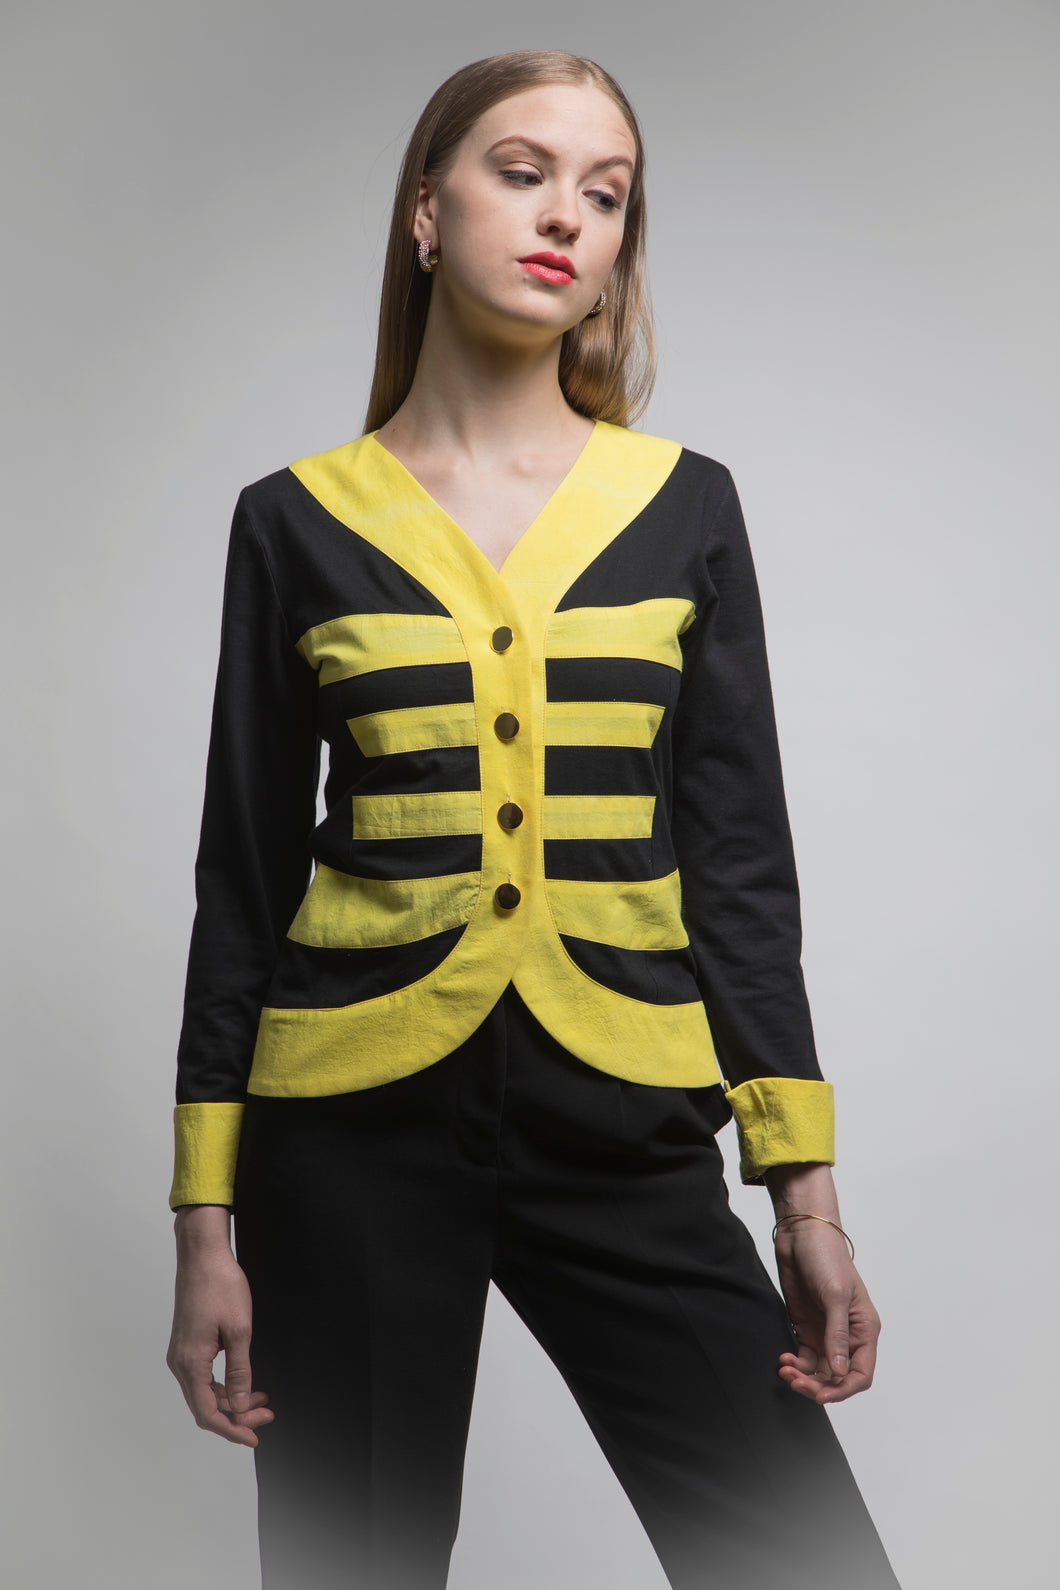 Mei 美 Cardigan Jacket (Black/Yellow) Made in NYC